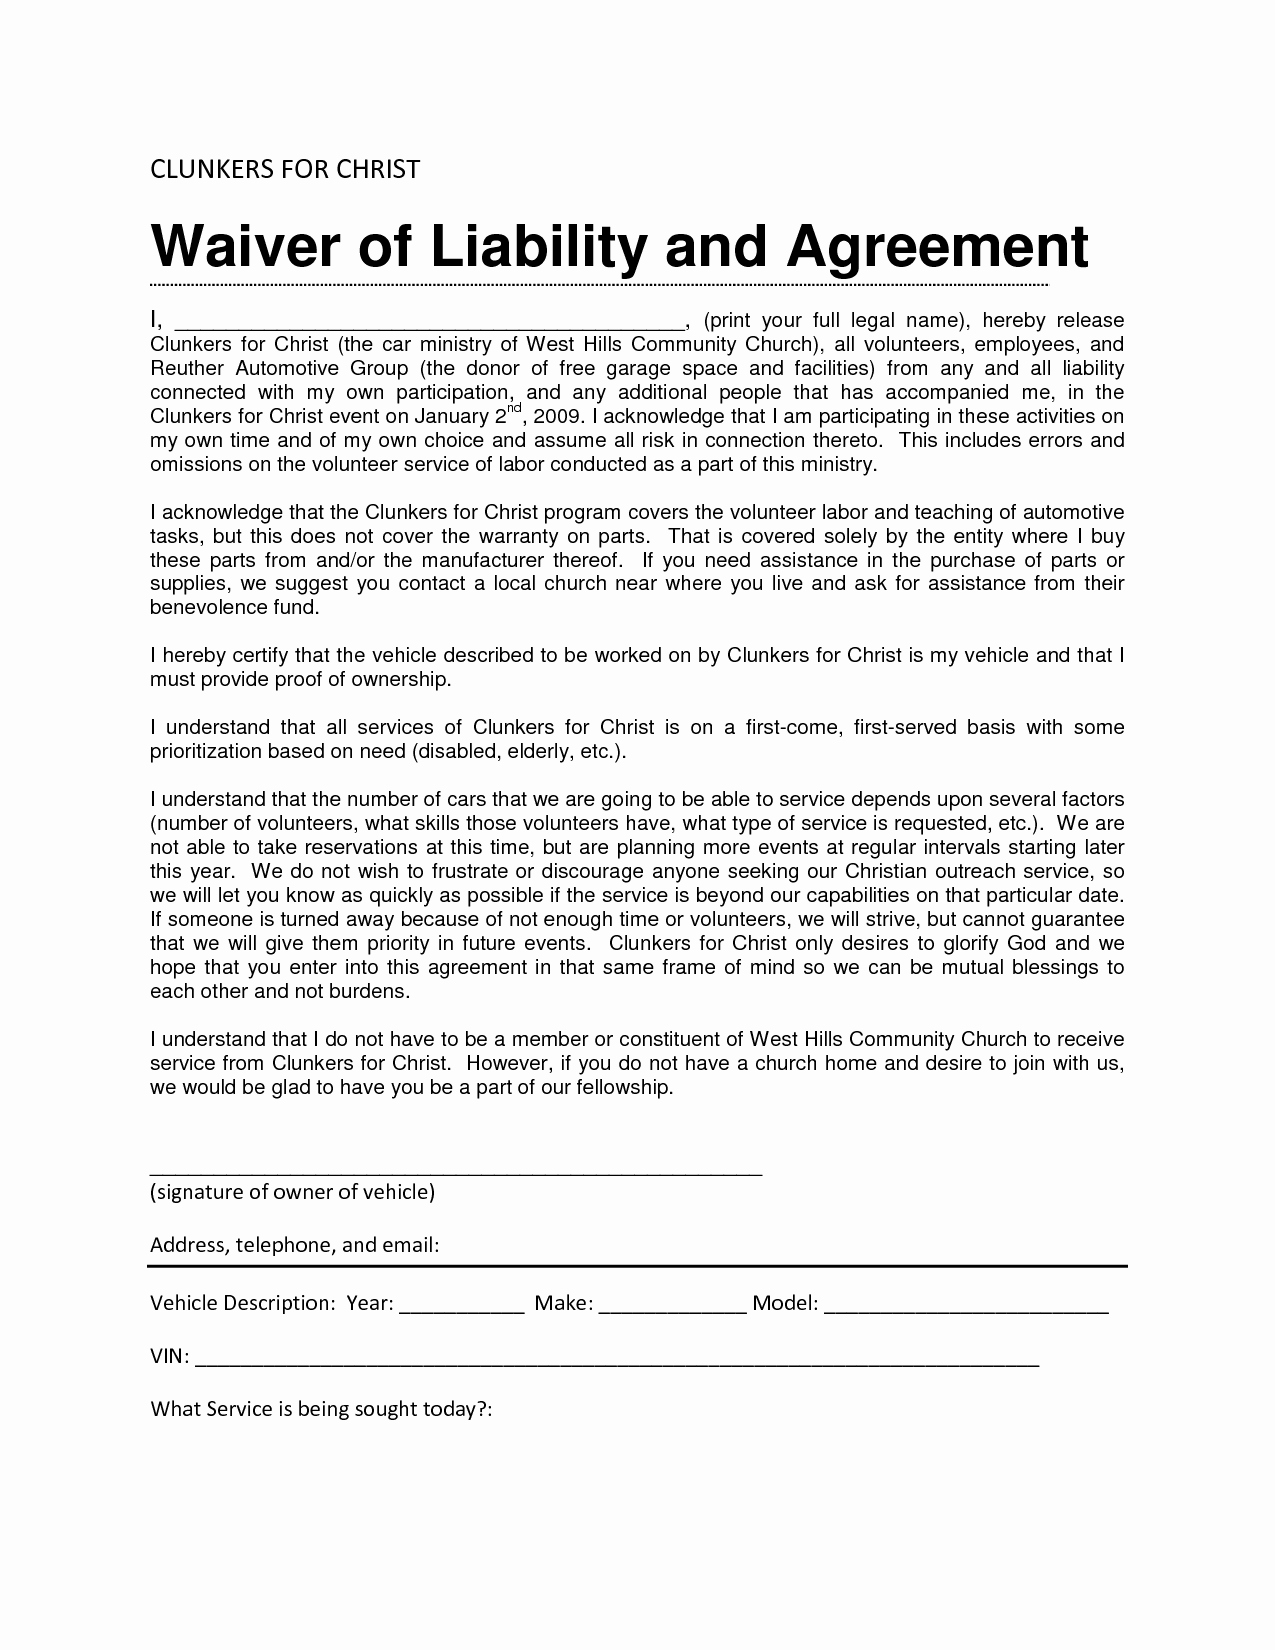 Liability Waiver Sample Bamboodownunder